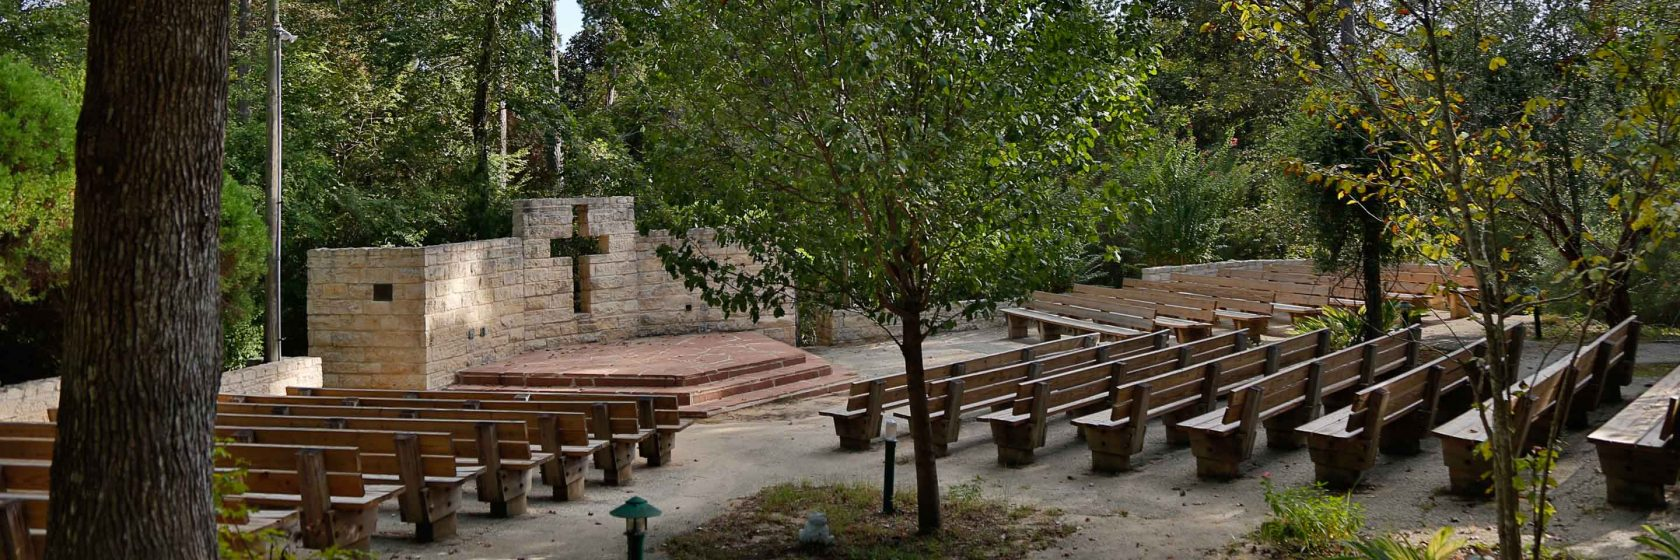 Outdoor Chapel For Group Retreats And Rentals Camp Cho Yeh